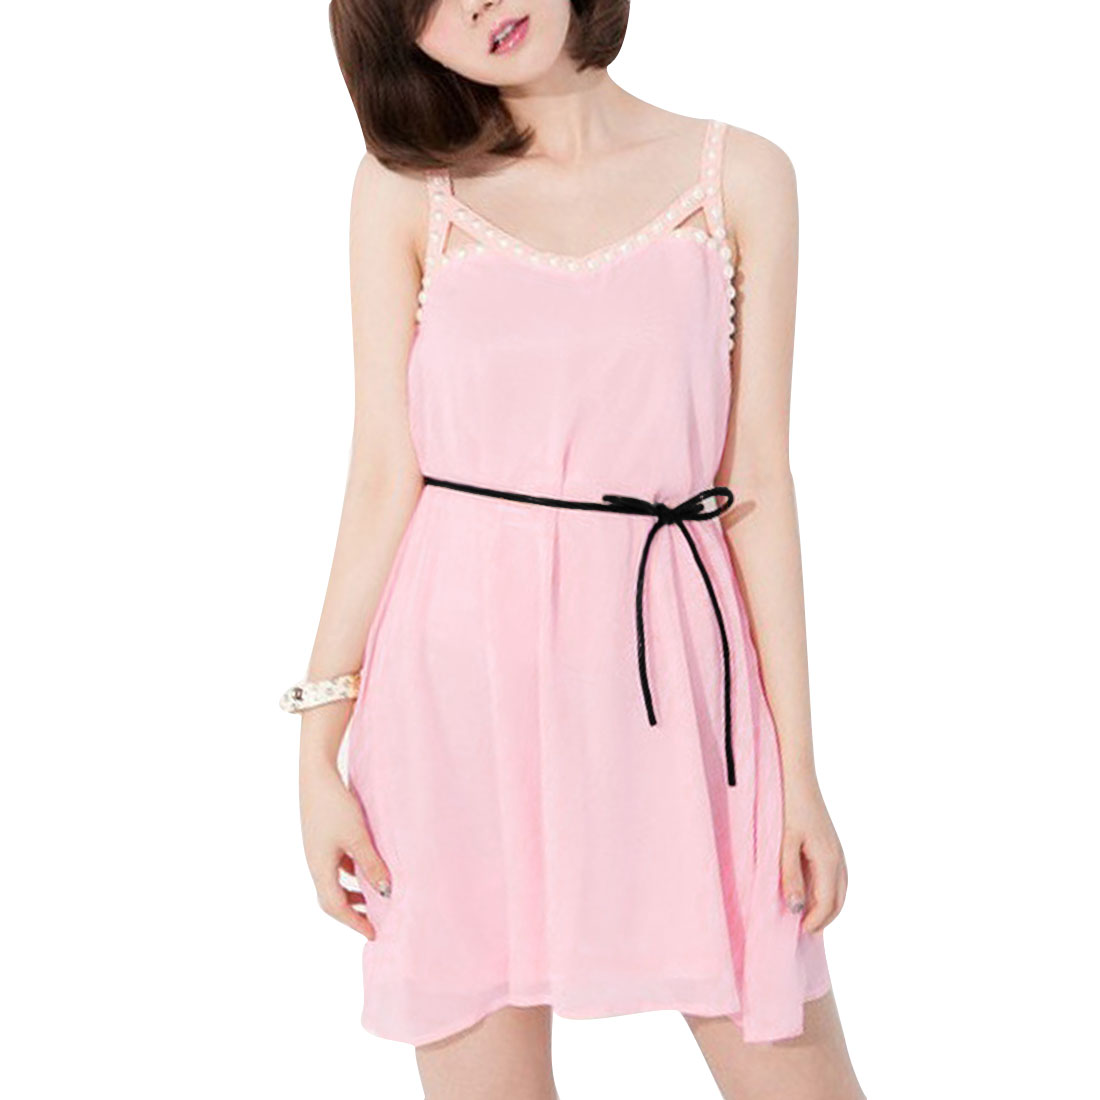 Ladies Round Neck Pullover Sleeveless Spaghetti Strap Dress Pink S